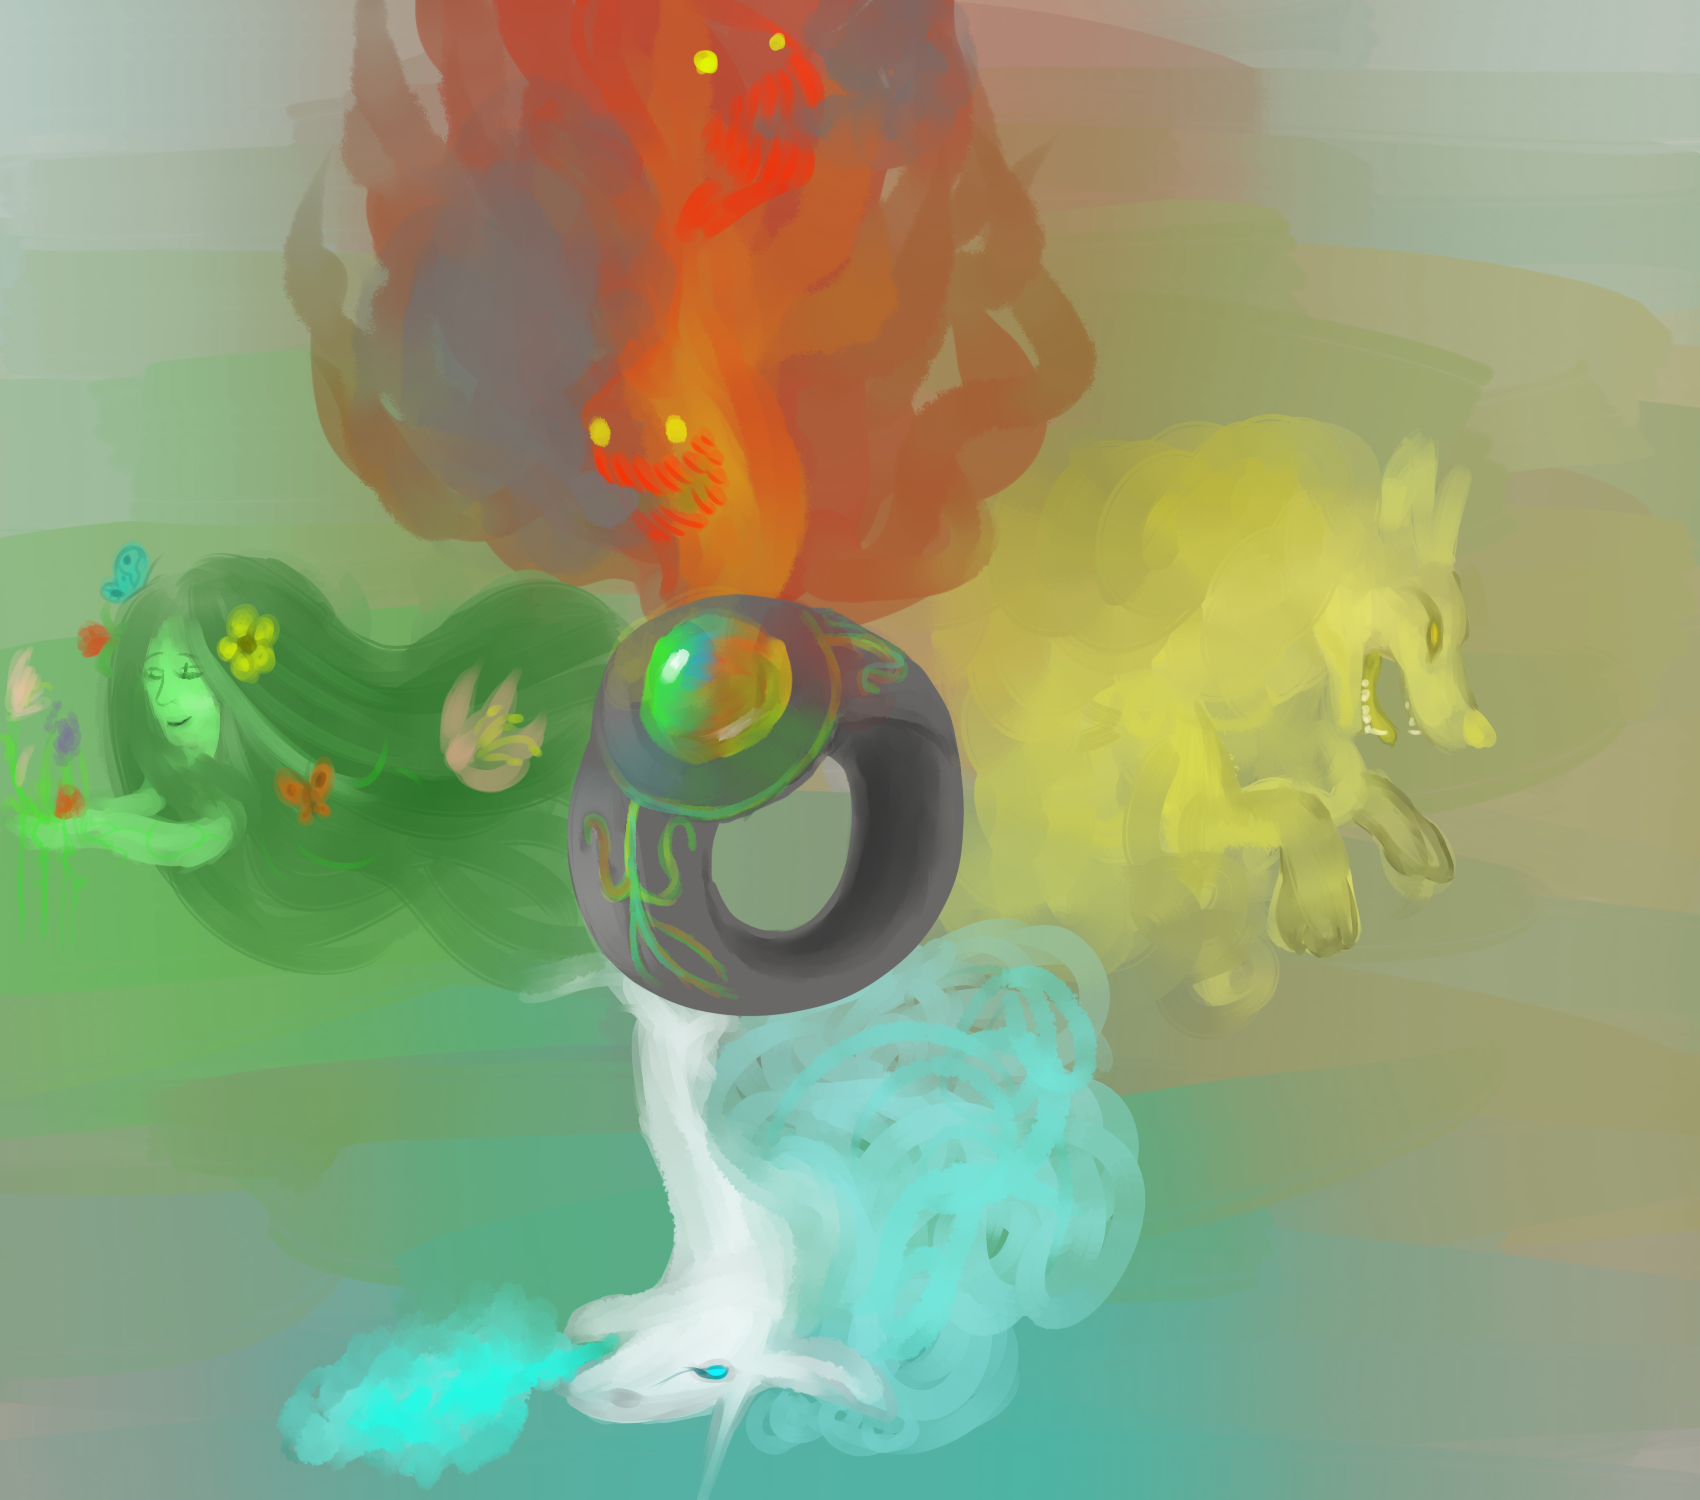 ring_of_arcana_by_soupa12-d5mvqst.png